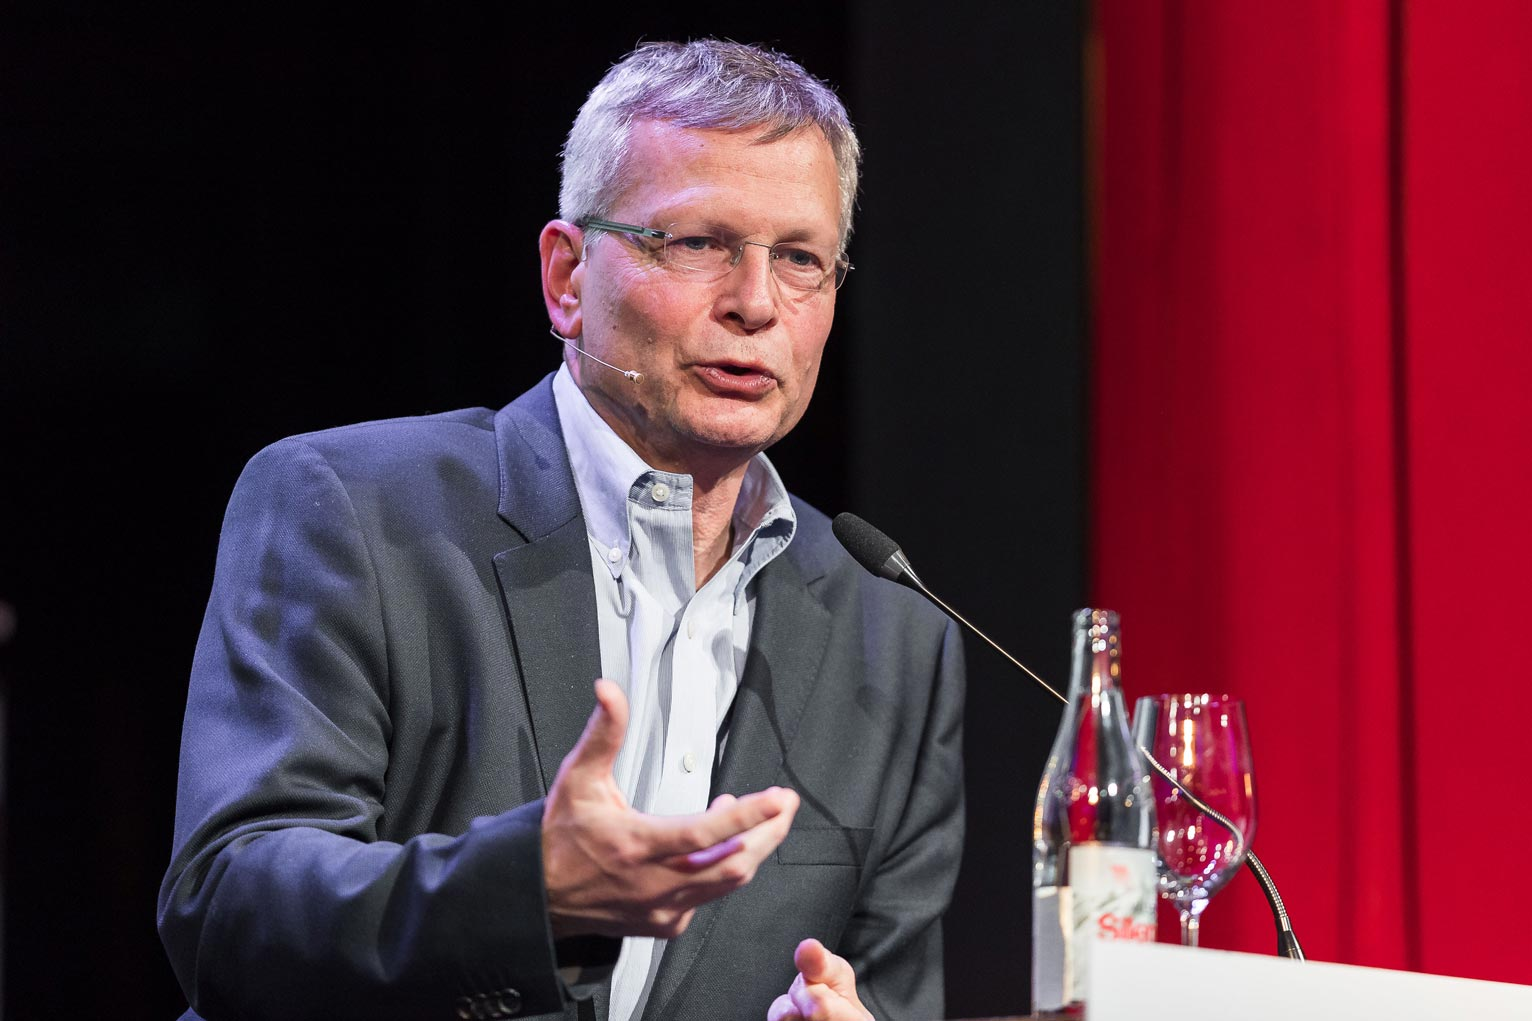 Dani Rodrik (Harvard University) advocated for a fairer, more sustainable globalization.